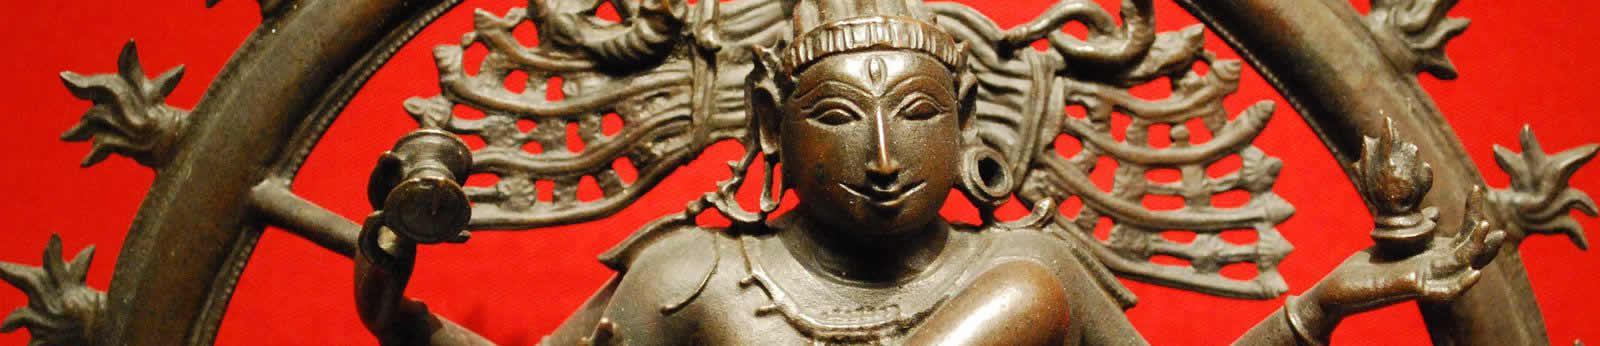 Detail of a statue in the Ashmolean Museum.  (Image credit: Richard Watts).